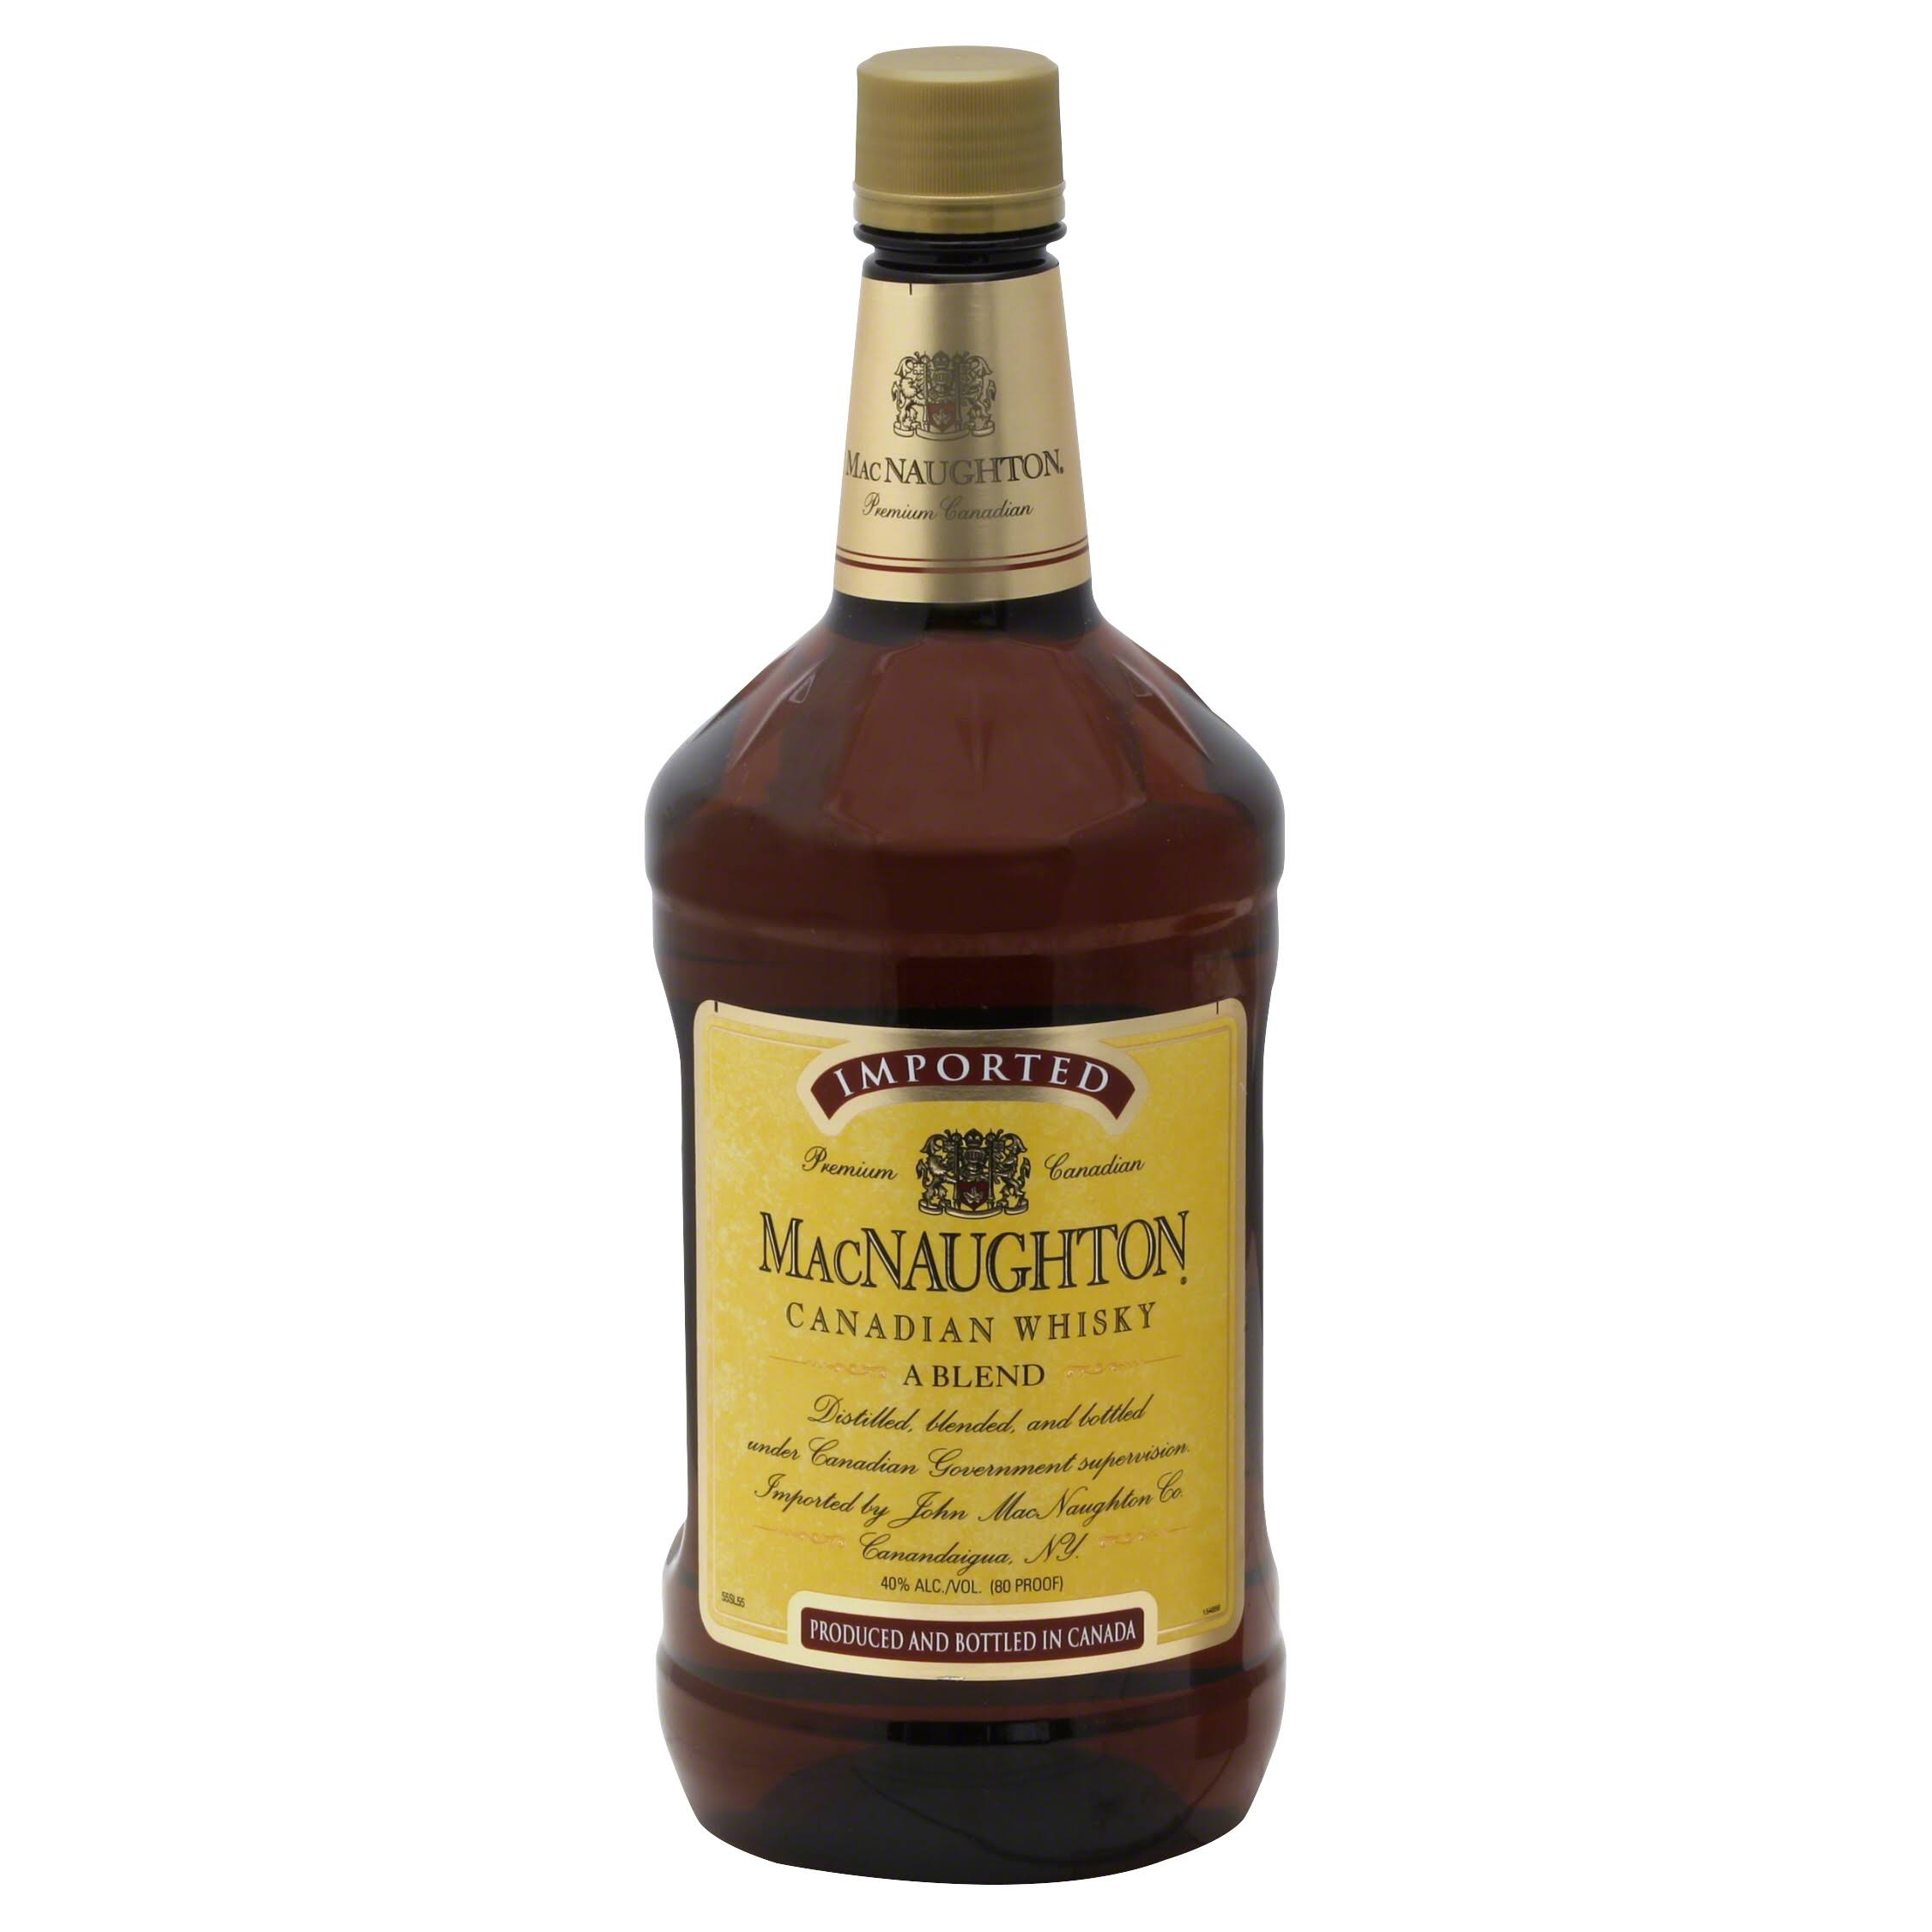 MacNaughton Whisky, Canadian, A Blend - 1.75 lt